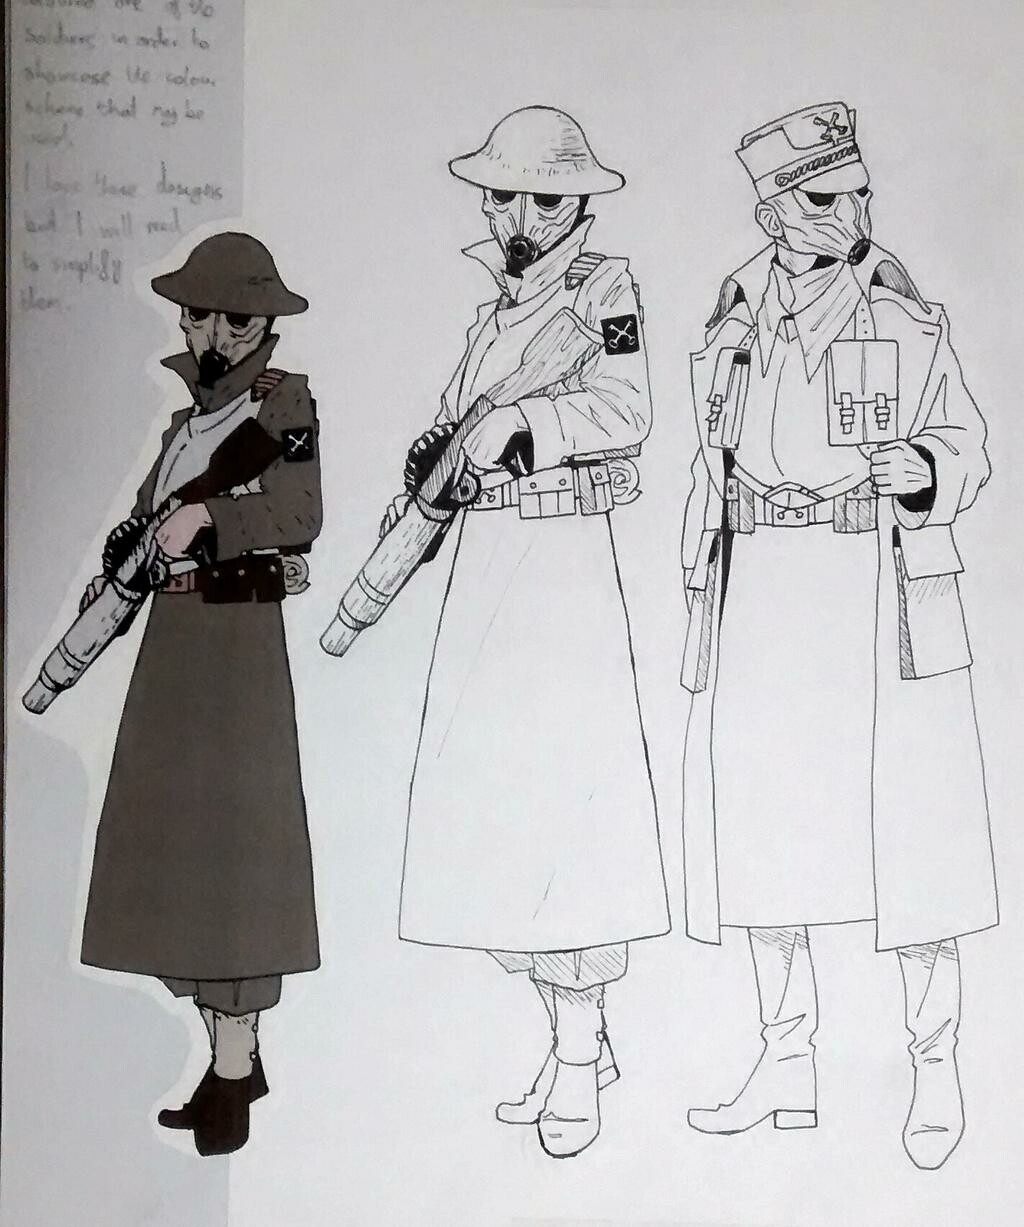 Concepts for the soldier's uniforms.